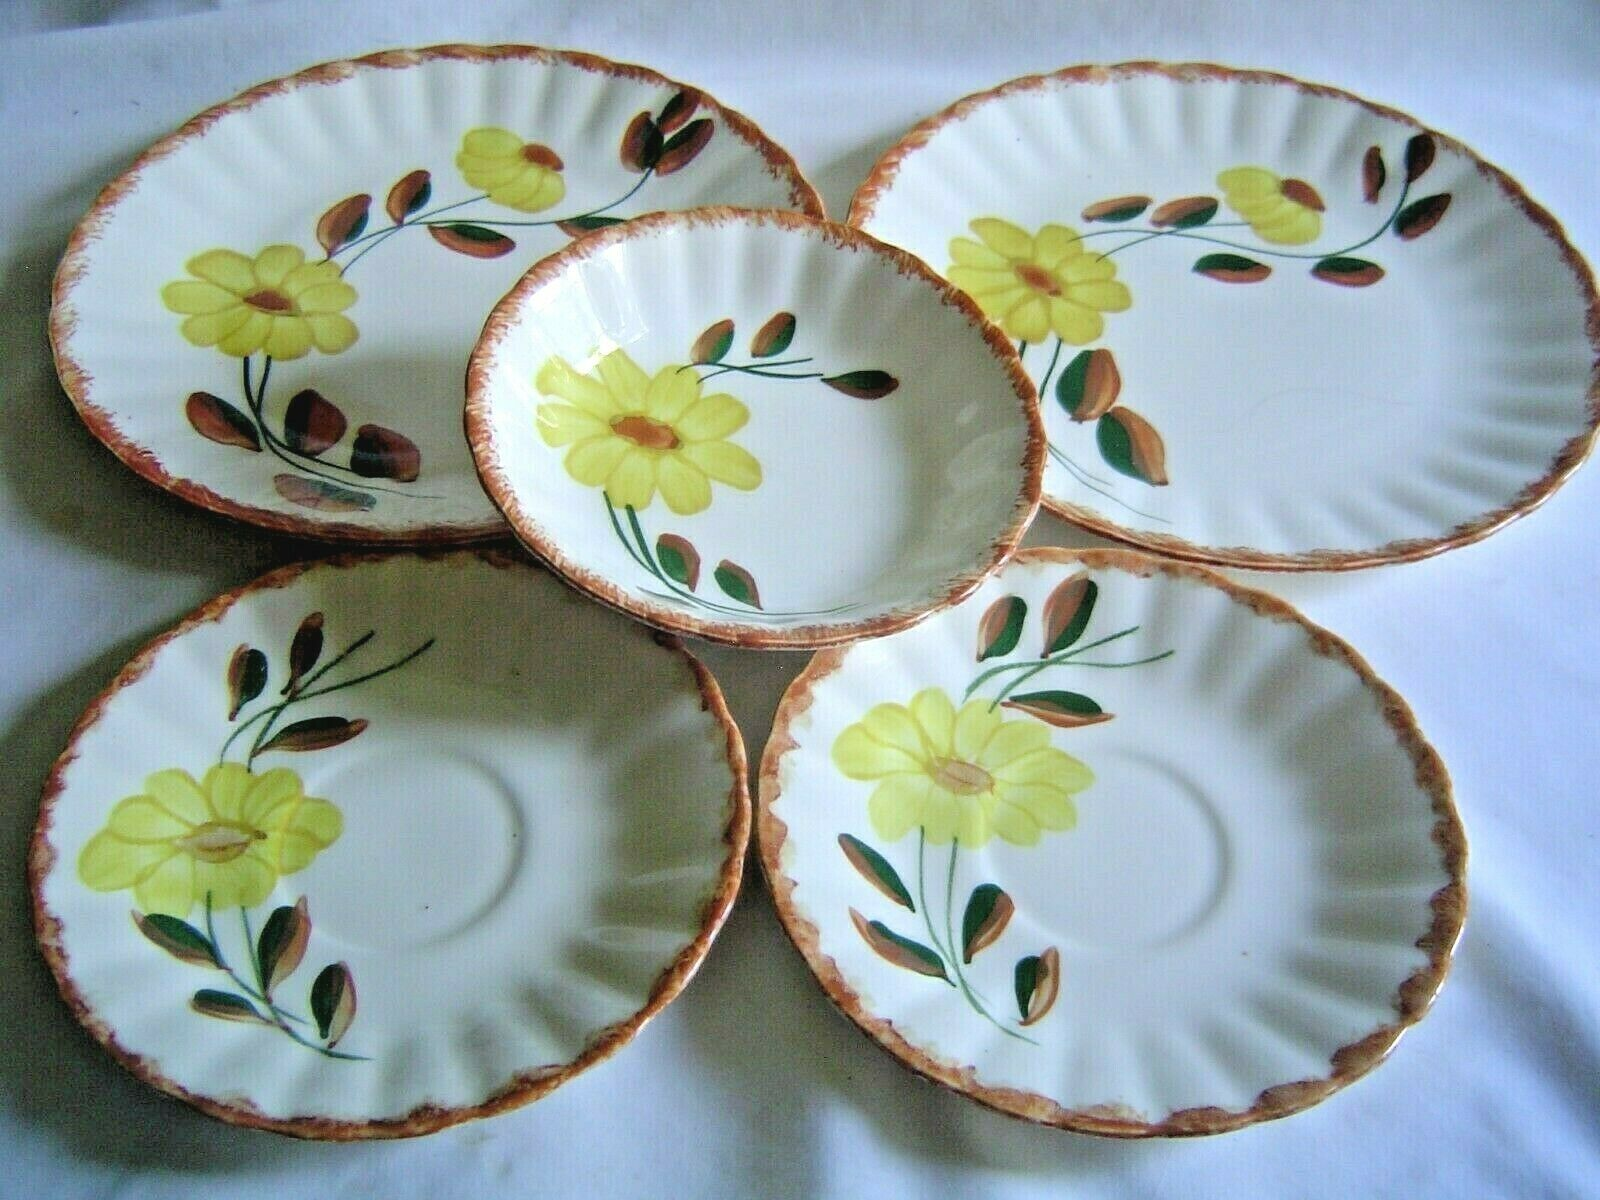 LOT OF 5 PIECES OF BLUE RIDGE SOUTHERN POTTERIES COUNTRY ROAD YELLOW DAISY